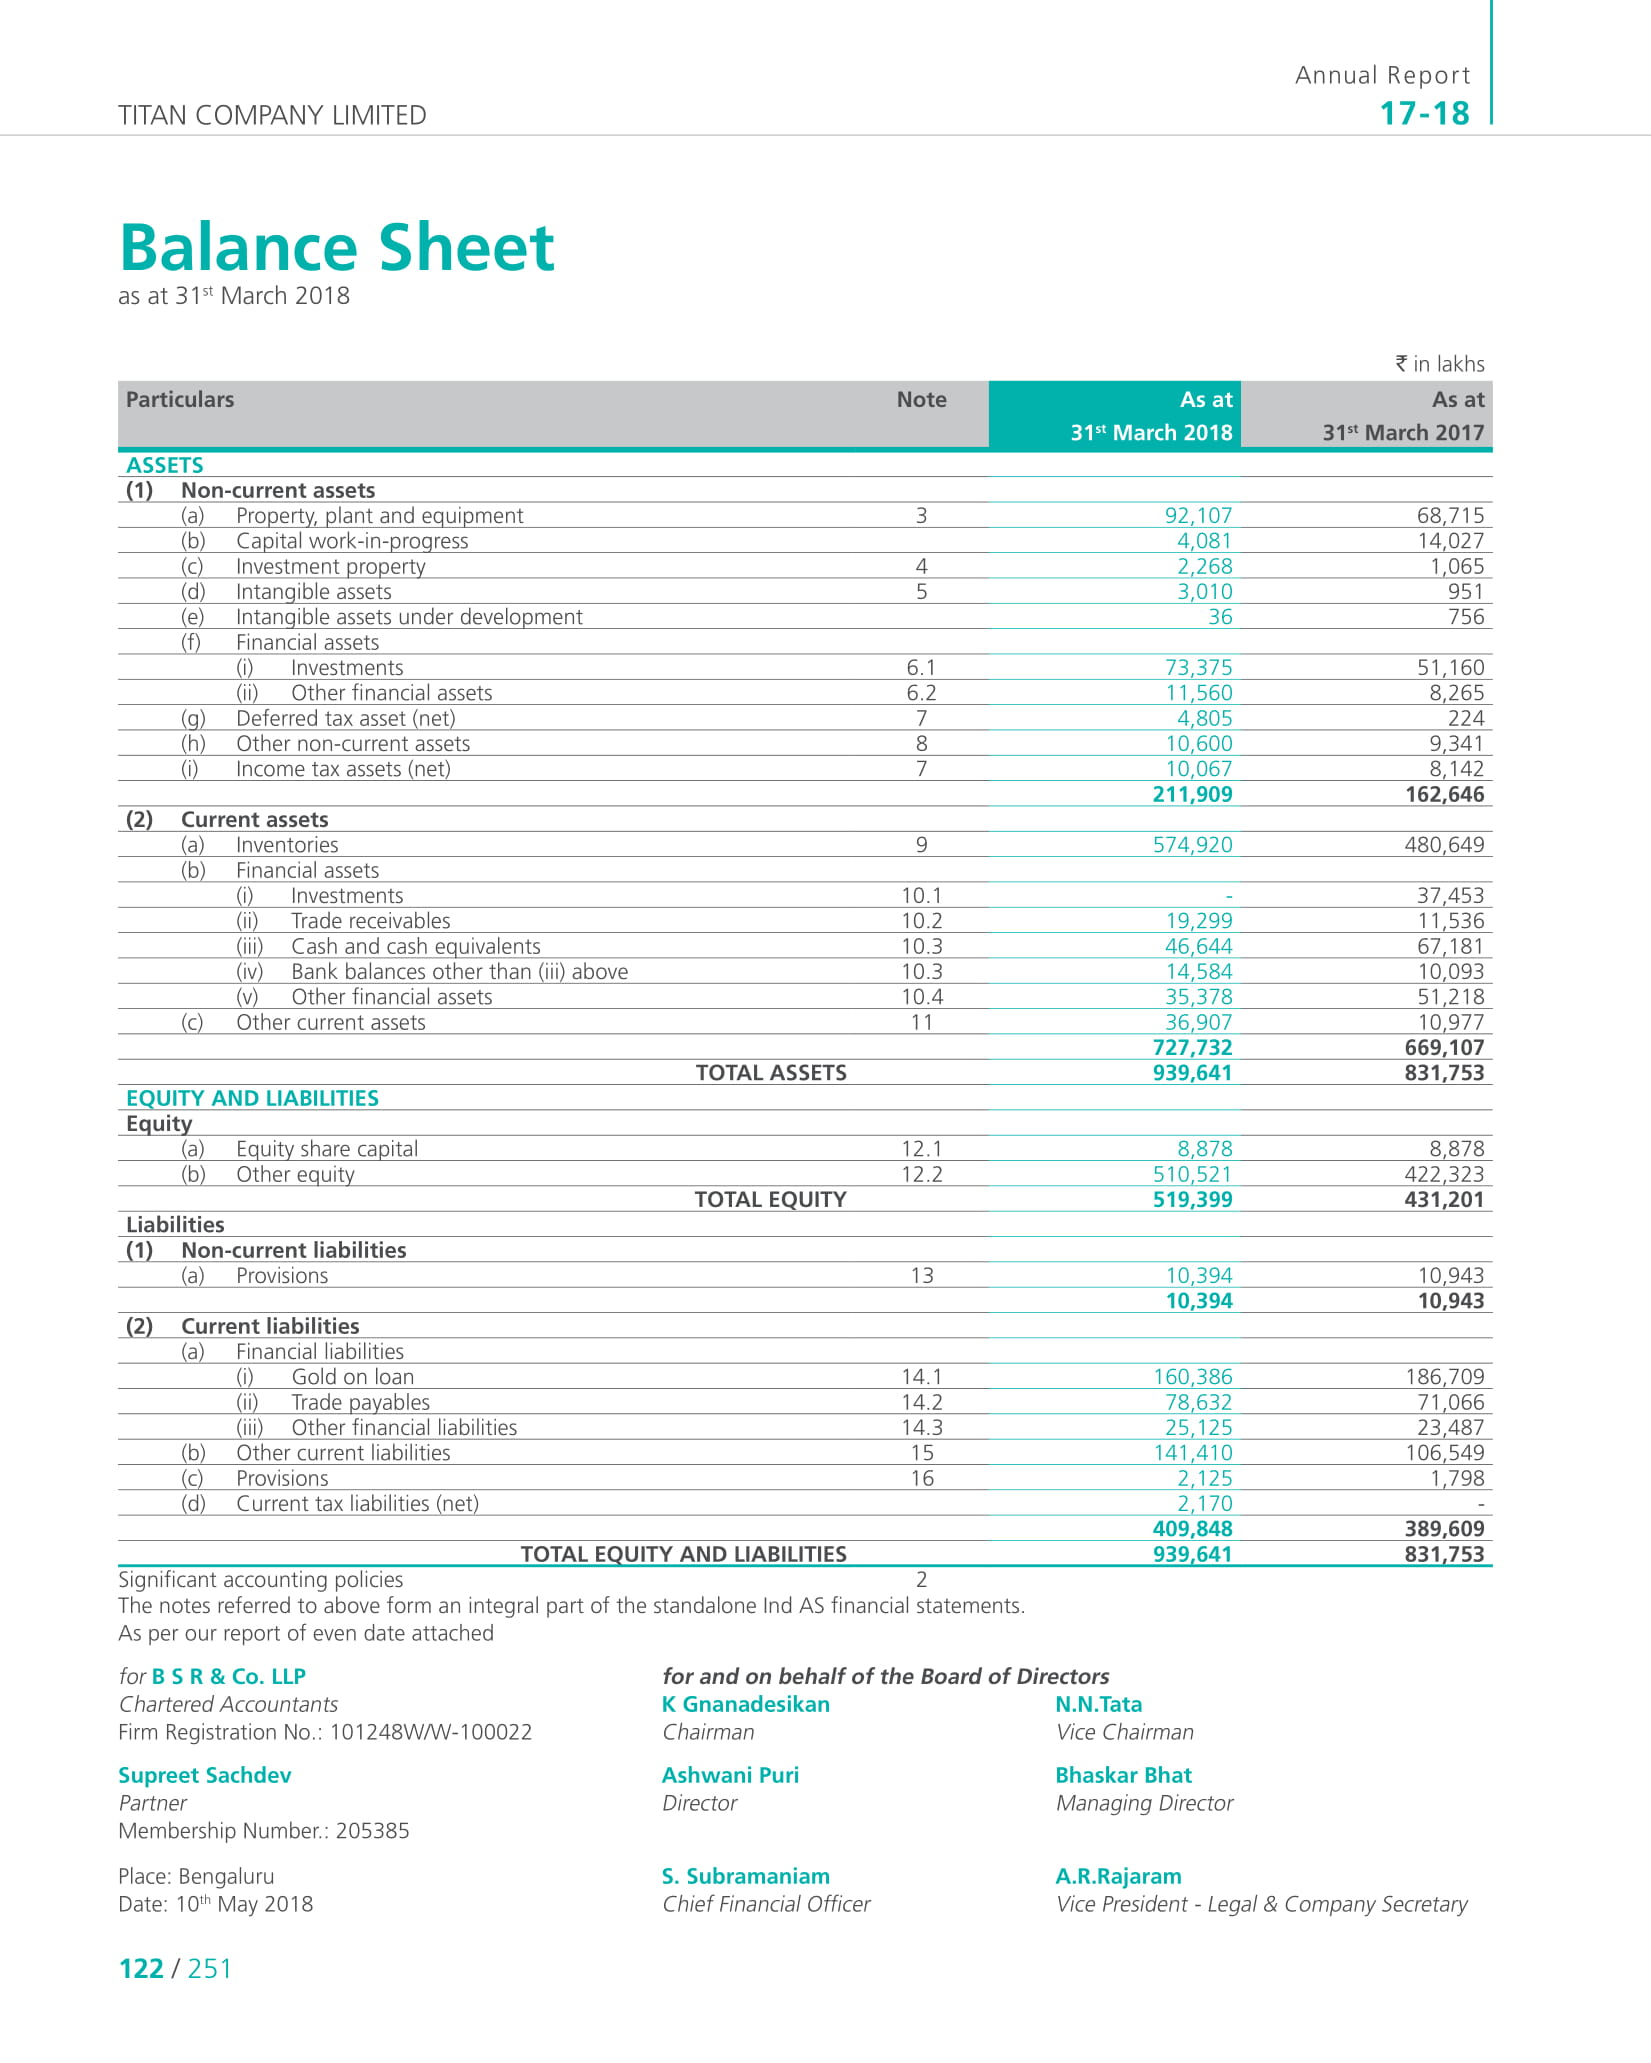 How to Analyse the Balance Sheet of a Company